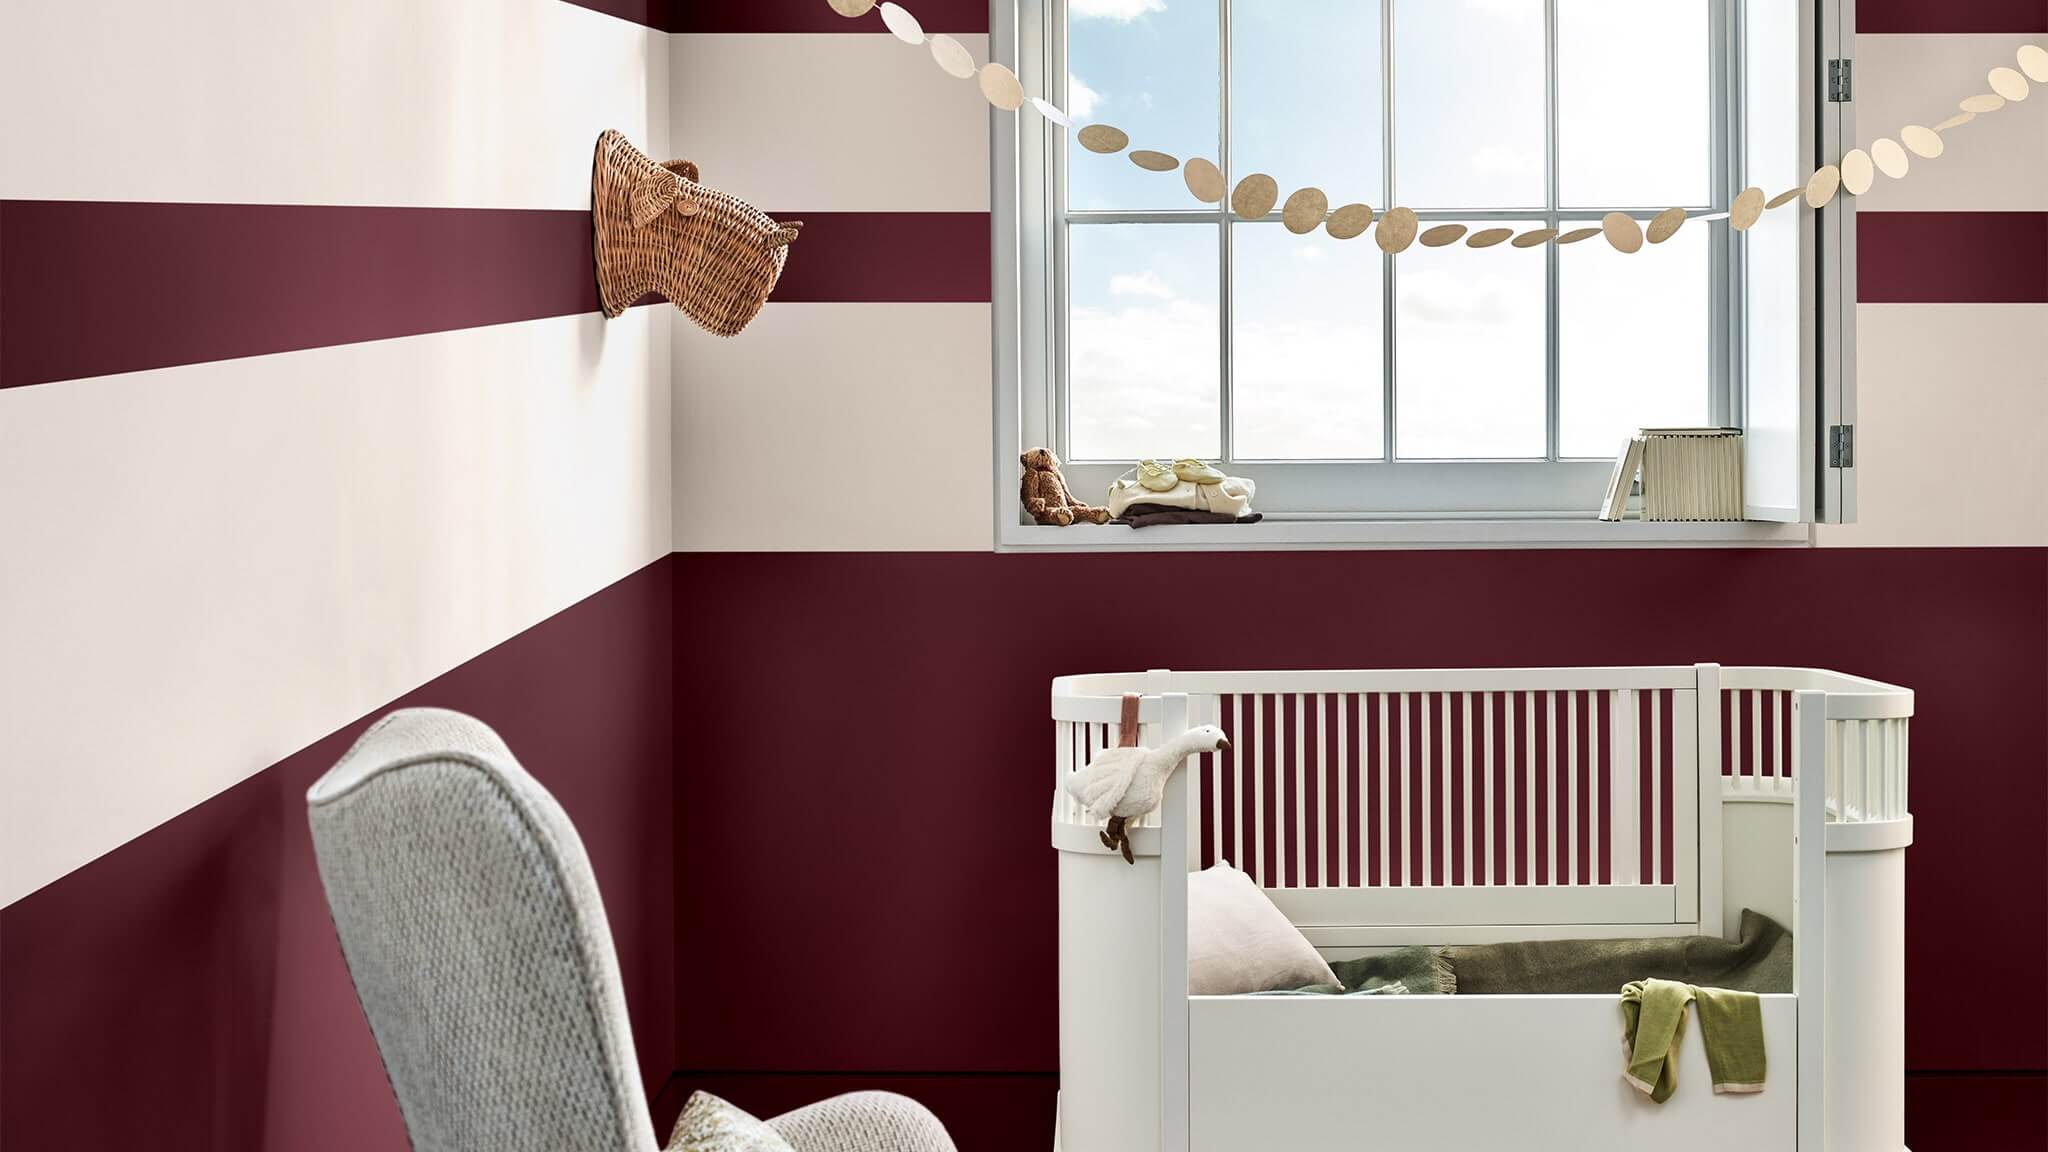 dulux-colour-futures-colour-of-the-year-2020-a-home-for-creativity-kidsroom-inspiration-thailand-54.jpg